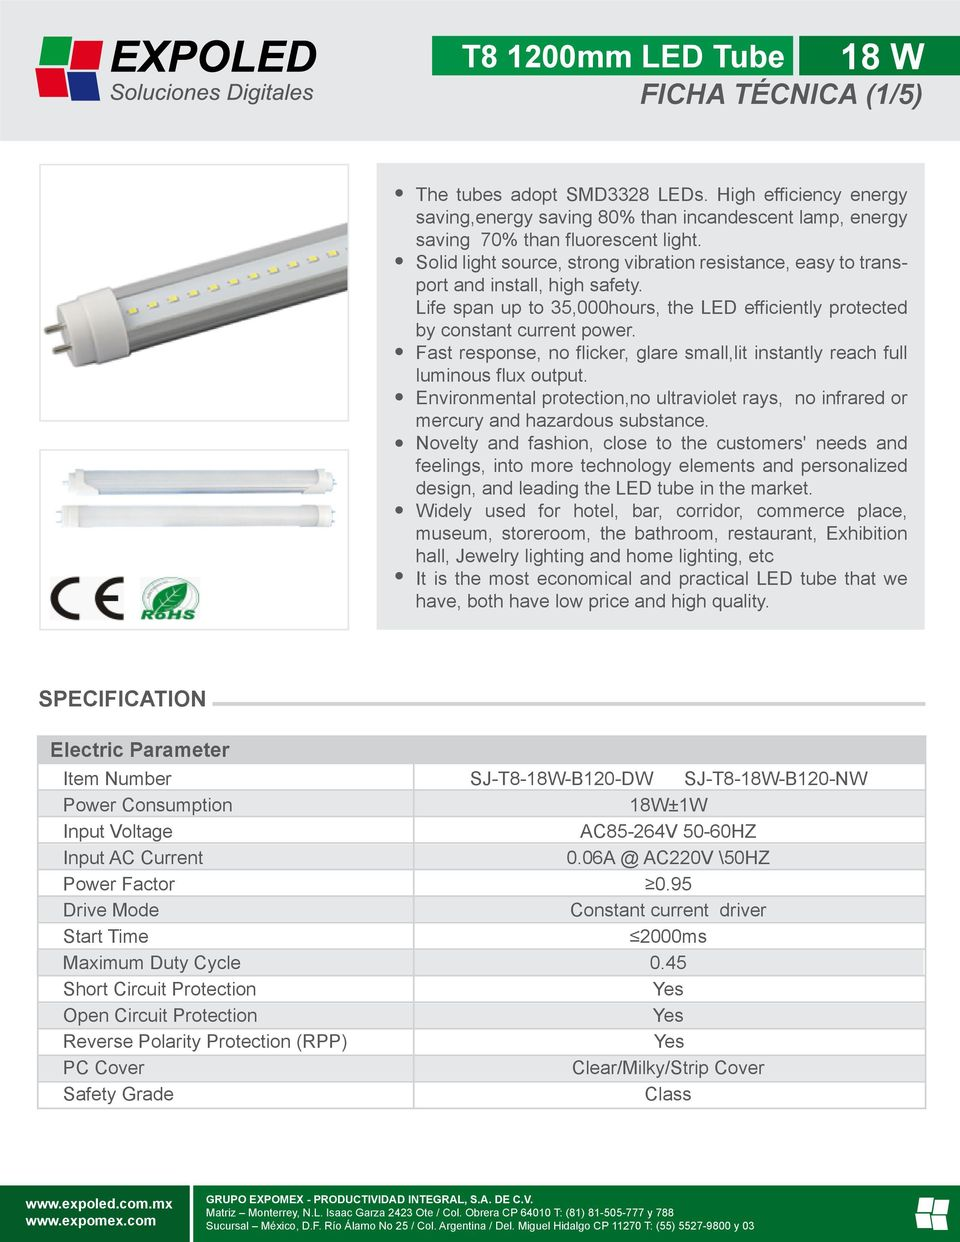 T8 1200mm Led Tube 18 W Ficha Tcnica 1 5 Pdf 1500mm Light Circuit Diagram Buy Fast Response No Flicker Glare Smalllit Instantly Reach Full Luminous Flux Output